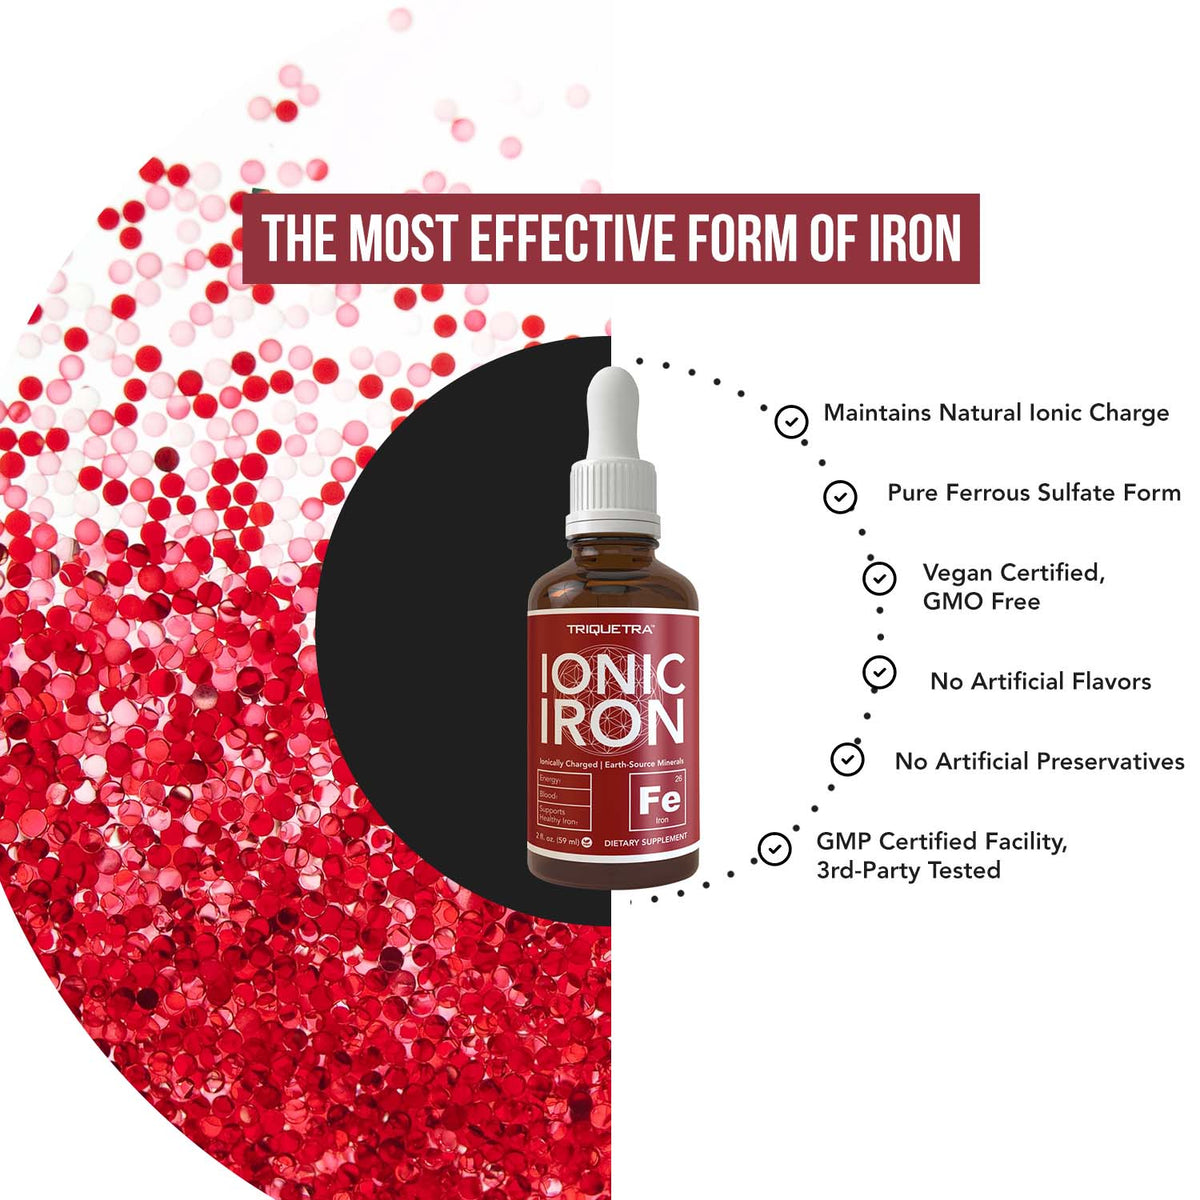 Ionic Iron Liquid Supplement